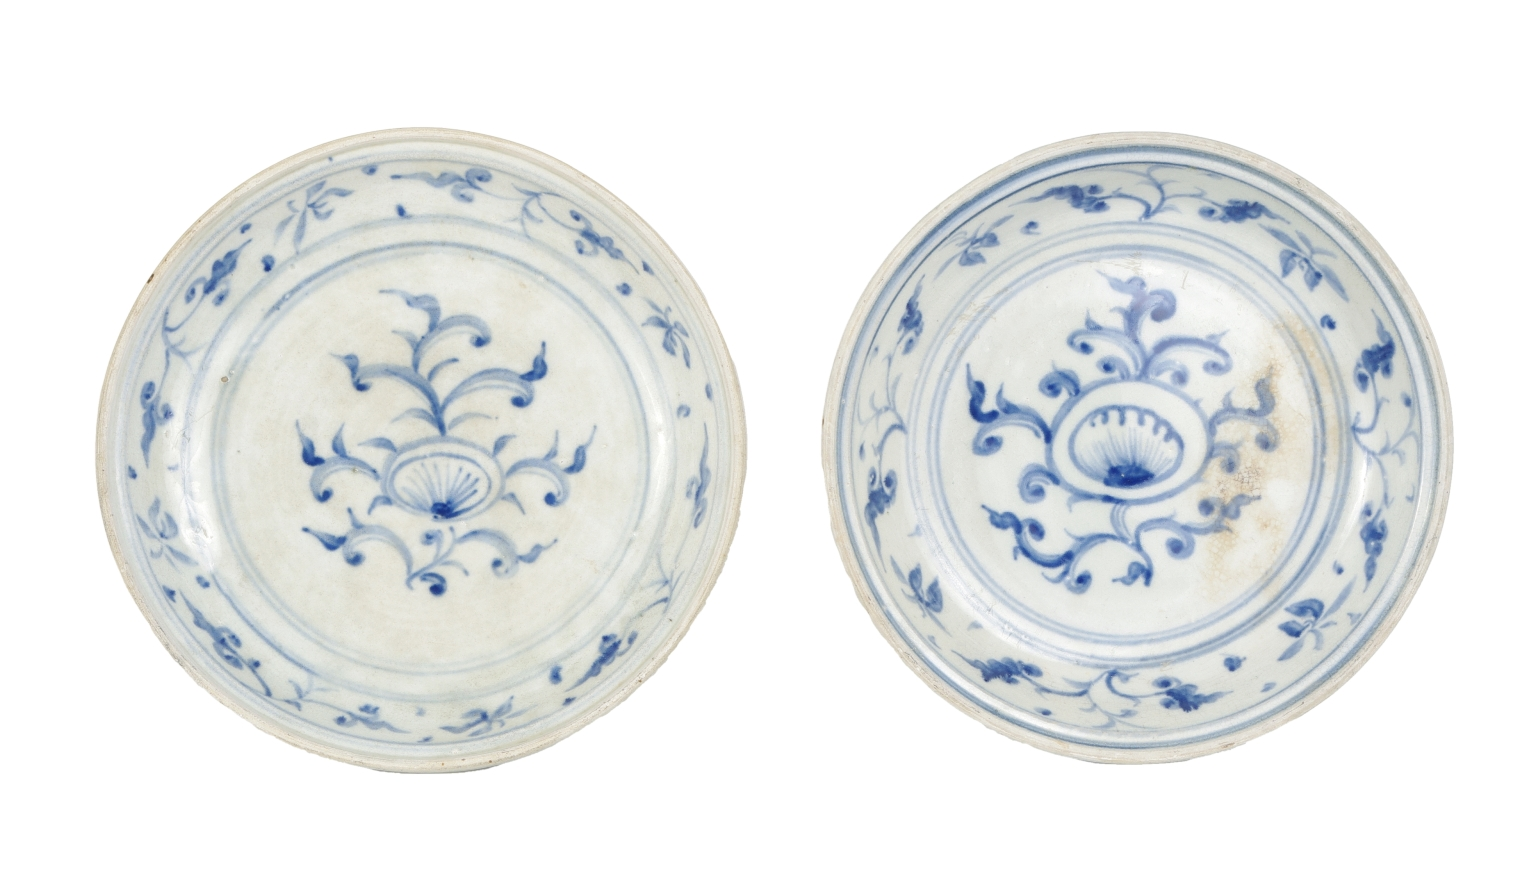 Two Blue and White Serving Dishes from the Hoi An Hoard, c. 1500